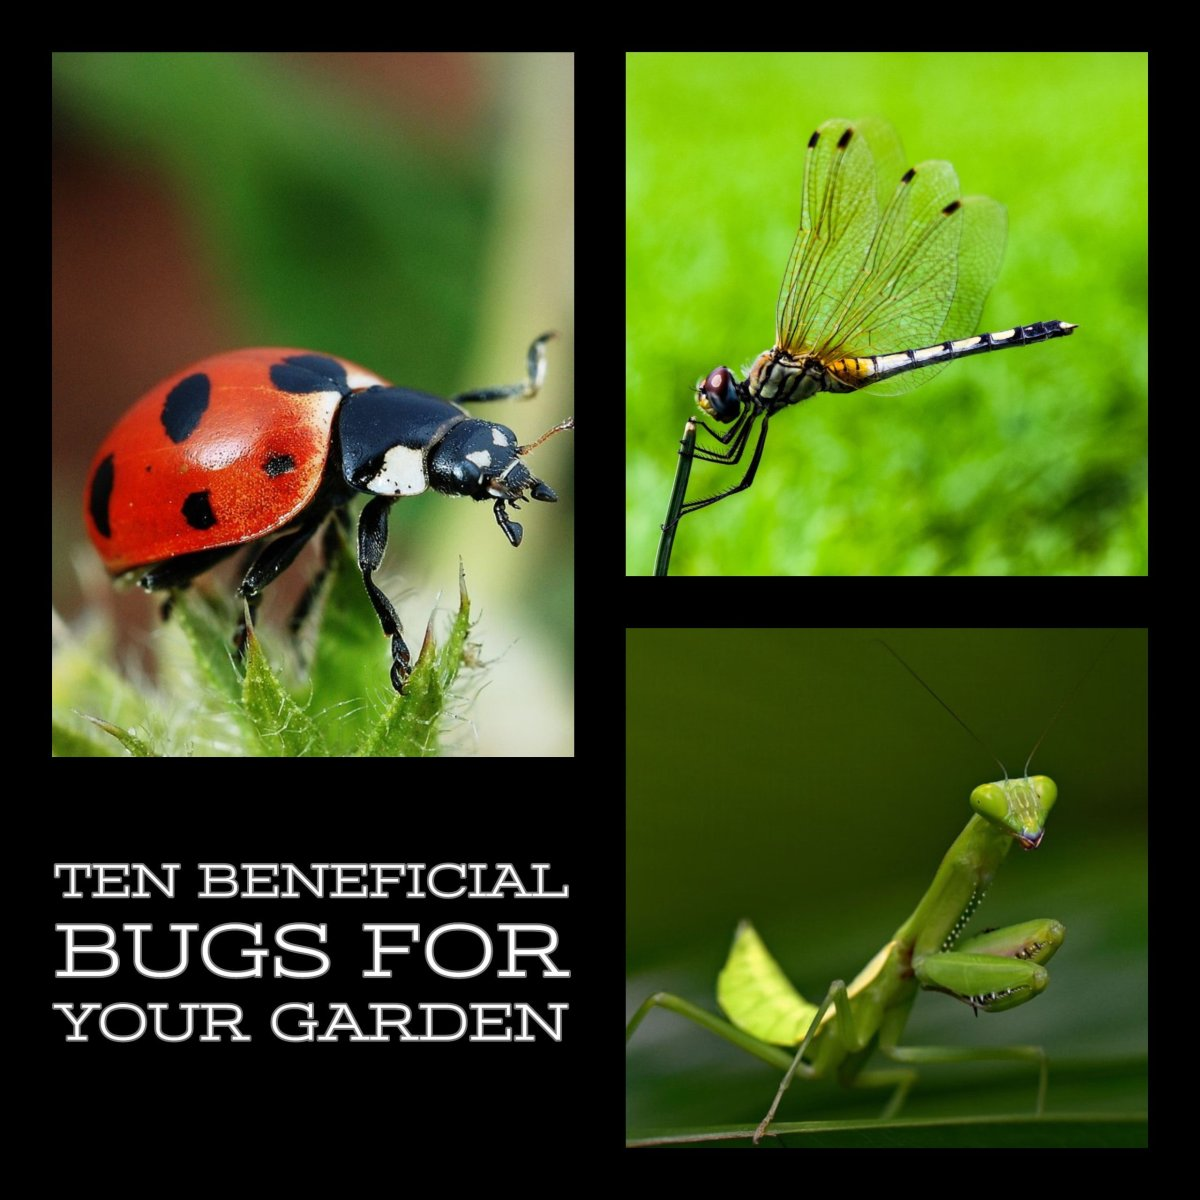 Ten Beneficial Bugs for Your Garden